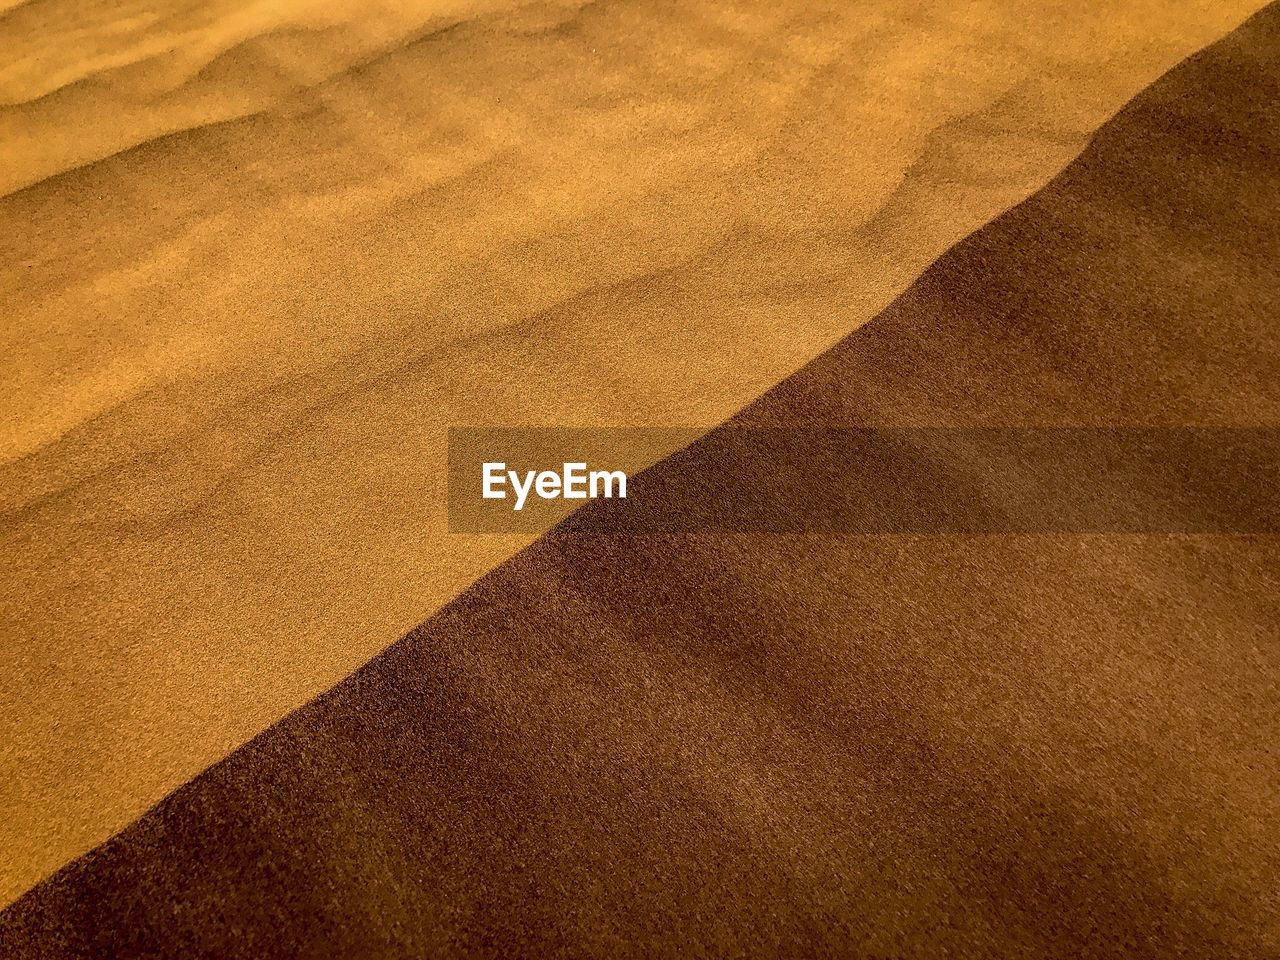 full frame, backgrounds, brown, no people, pattern, textured, high angle view, sand, land, close-up, day, sunlight, nature, built structure, material, textile, outdoors, abstract, beige, arid climate